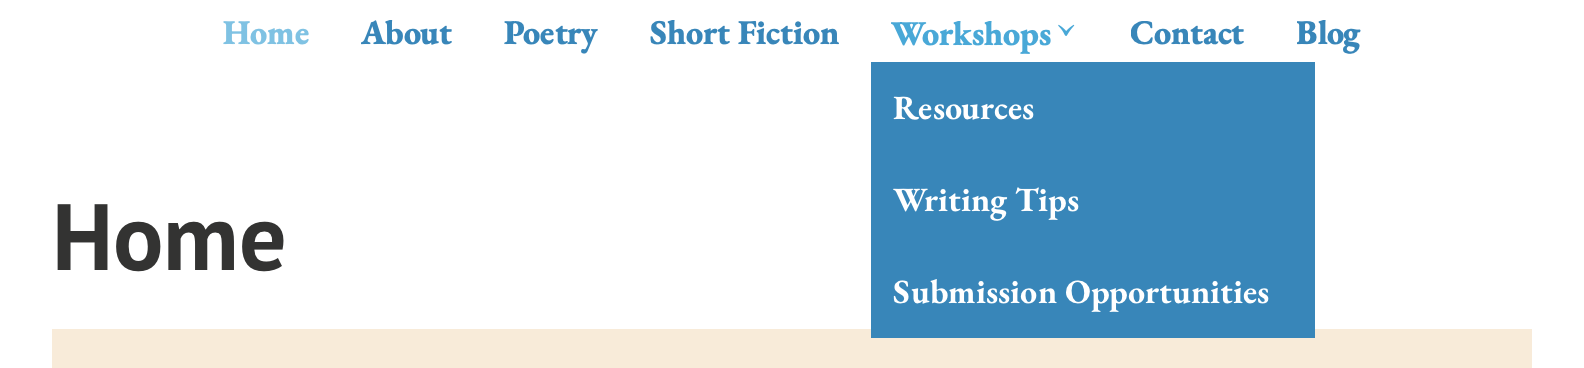 Screen shot of updated website menus and content organization into a homepage for announcements and pages for about, poetry, short fiction, workshops, contact, and blog